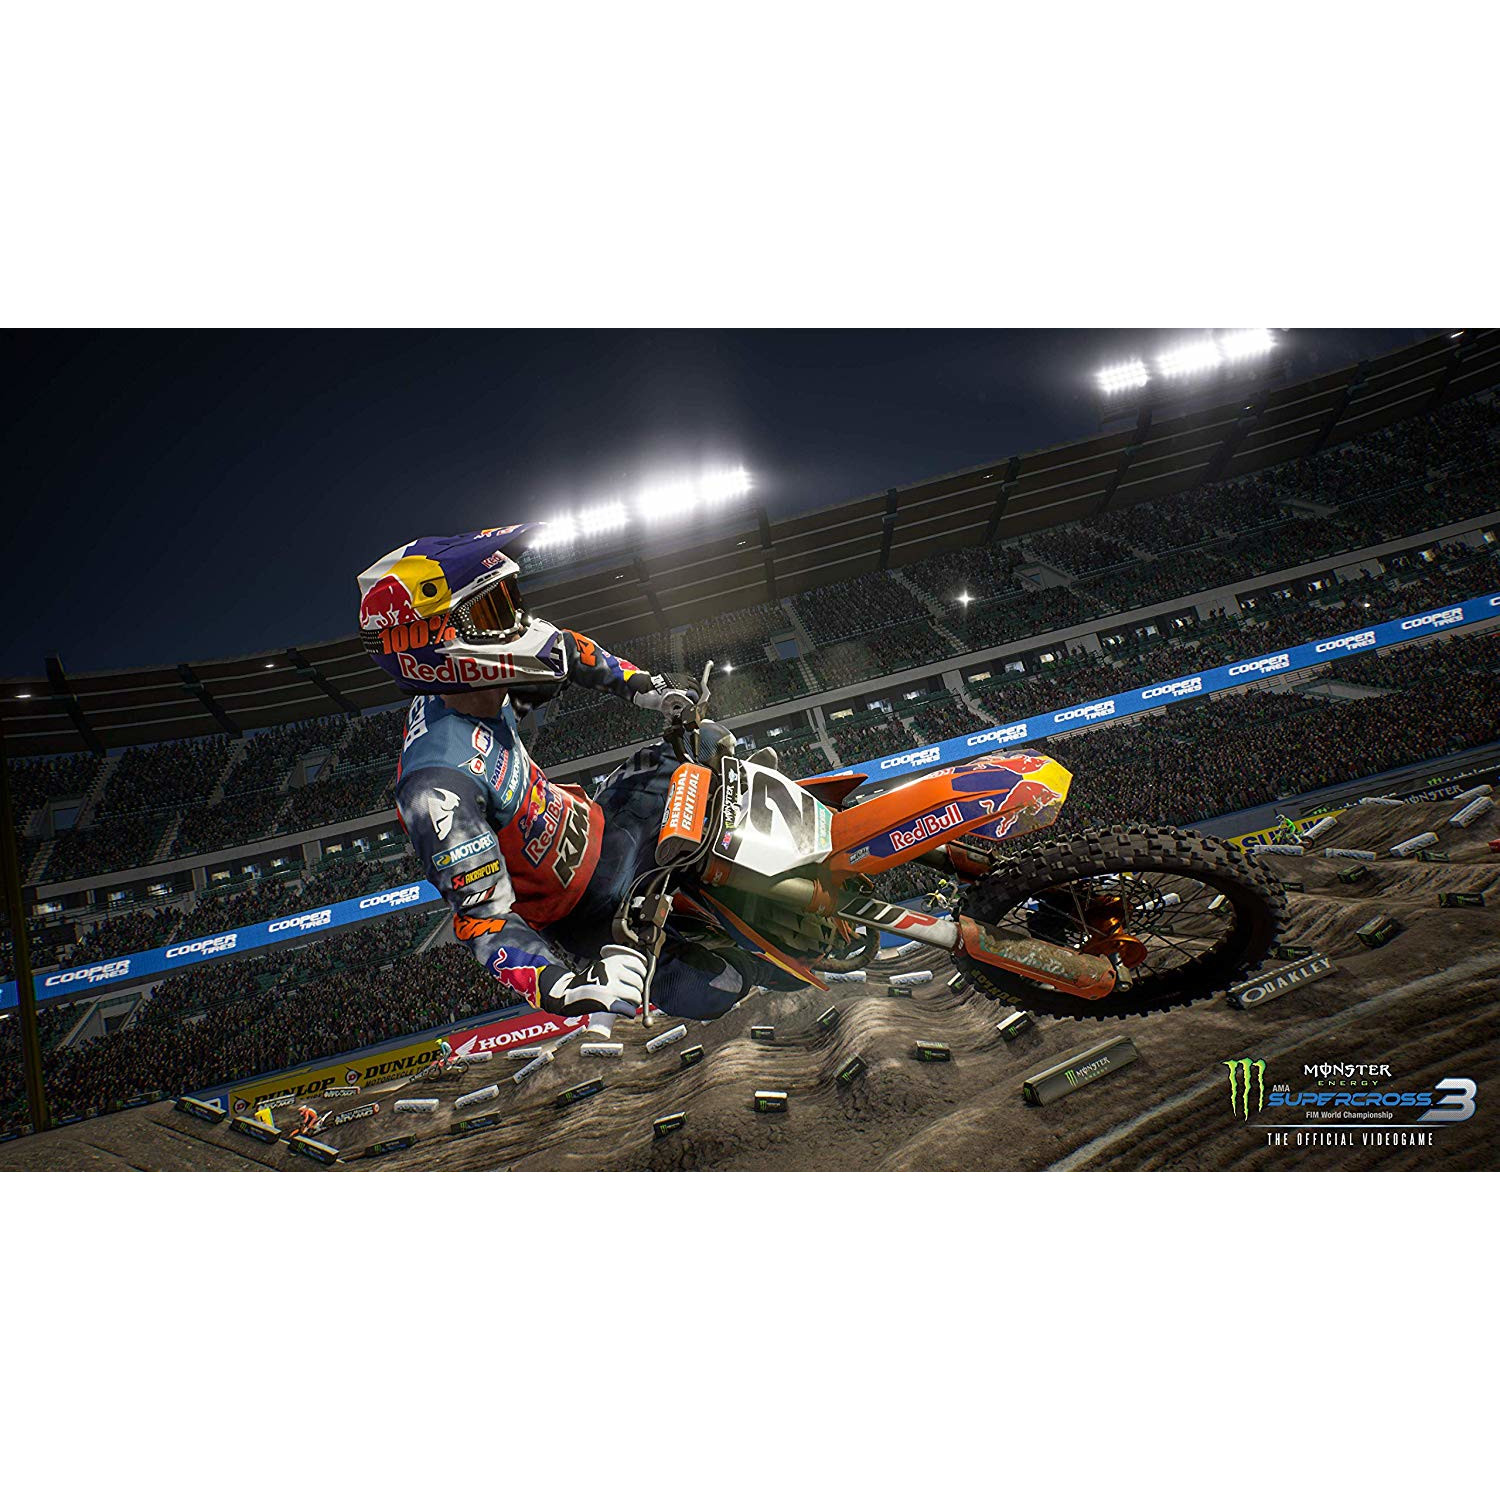 Joc Monster Energy Supercross 3 Pentru Nintendo Switch 4